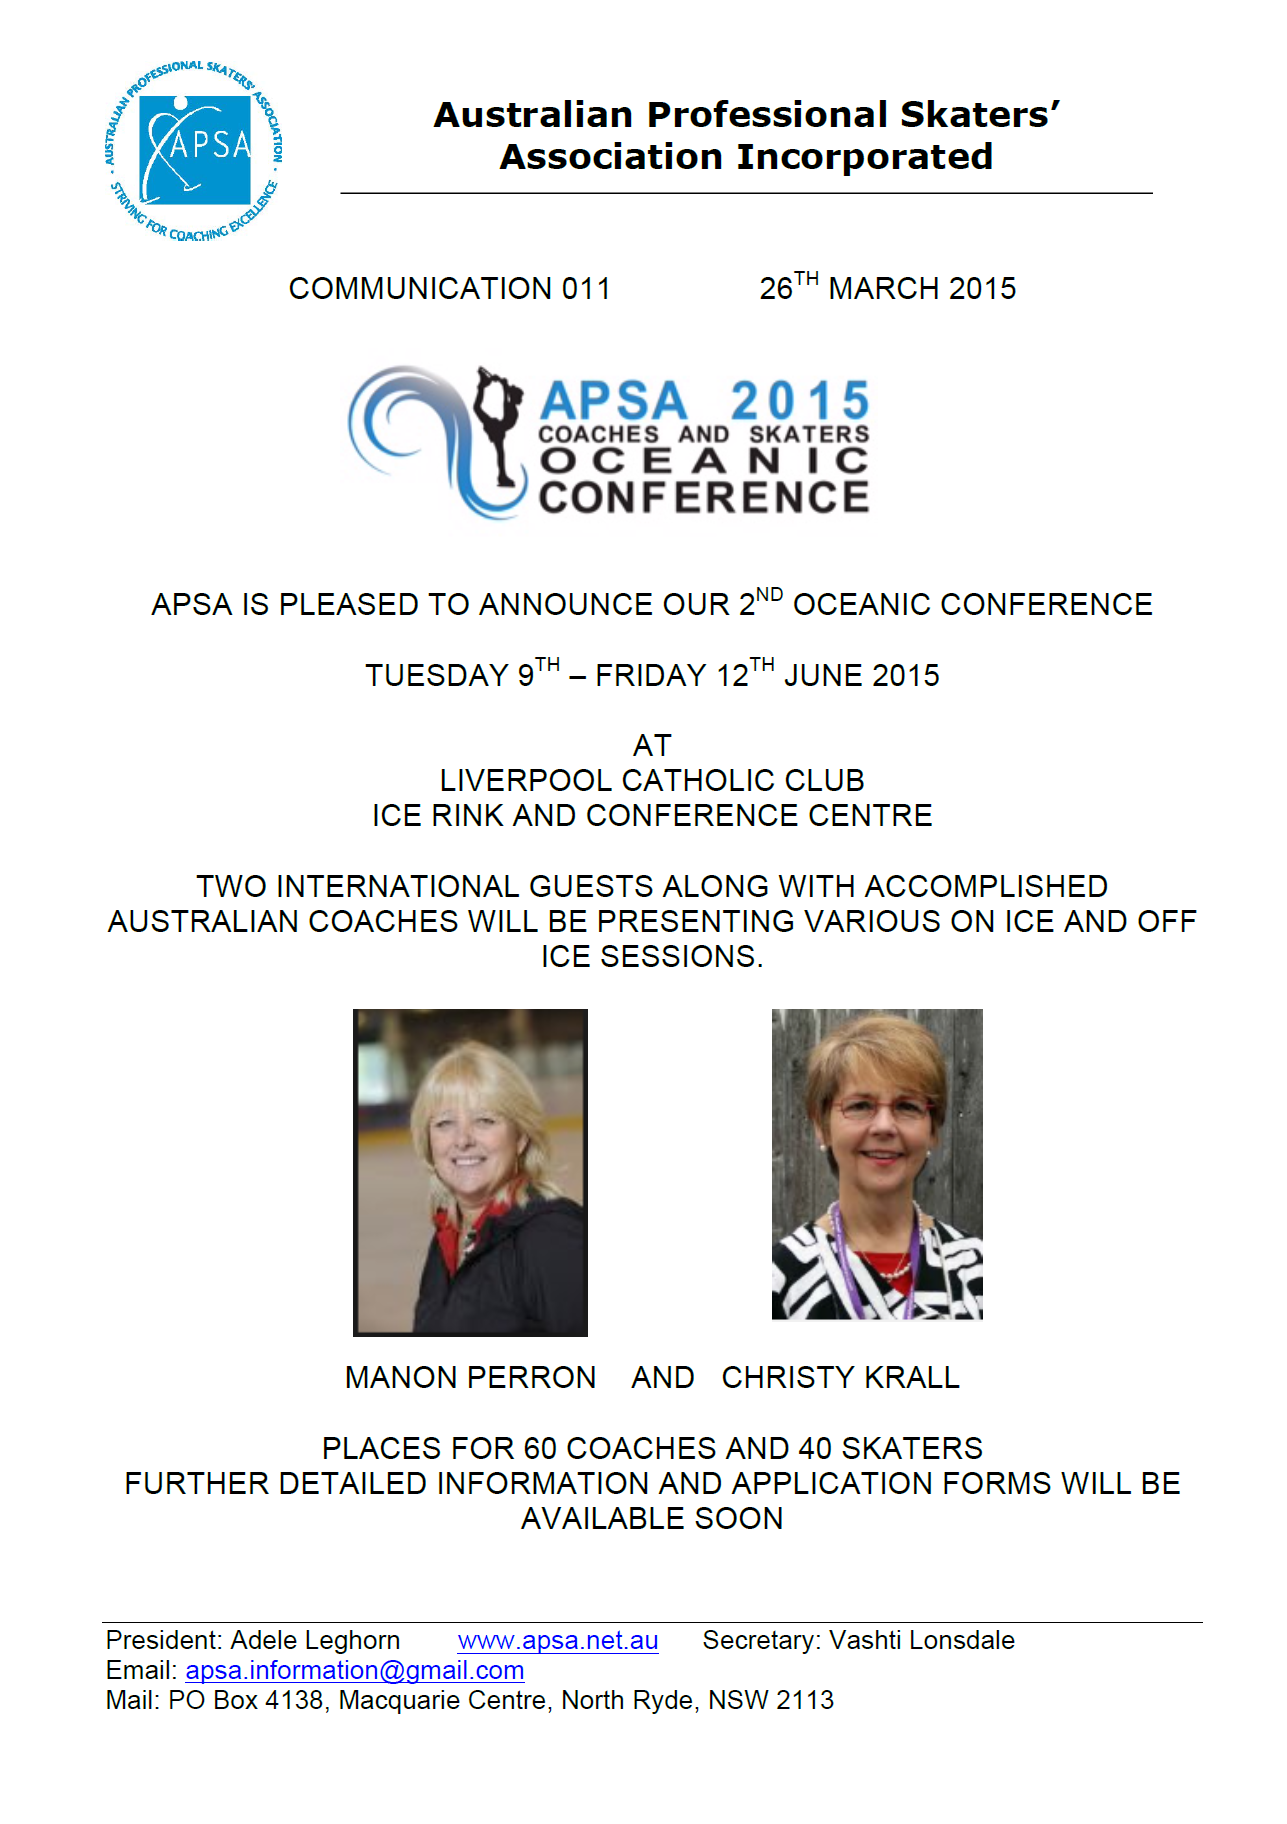 APSA Conference